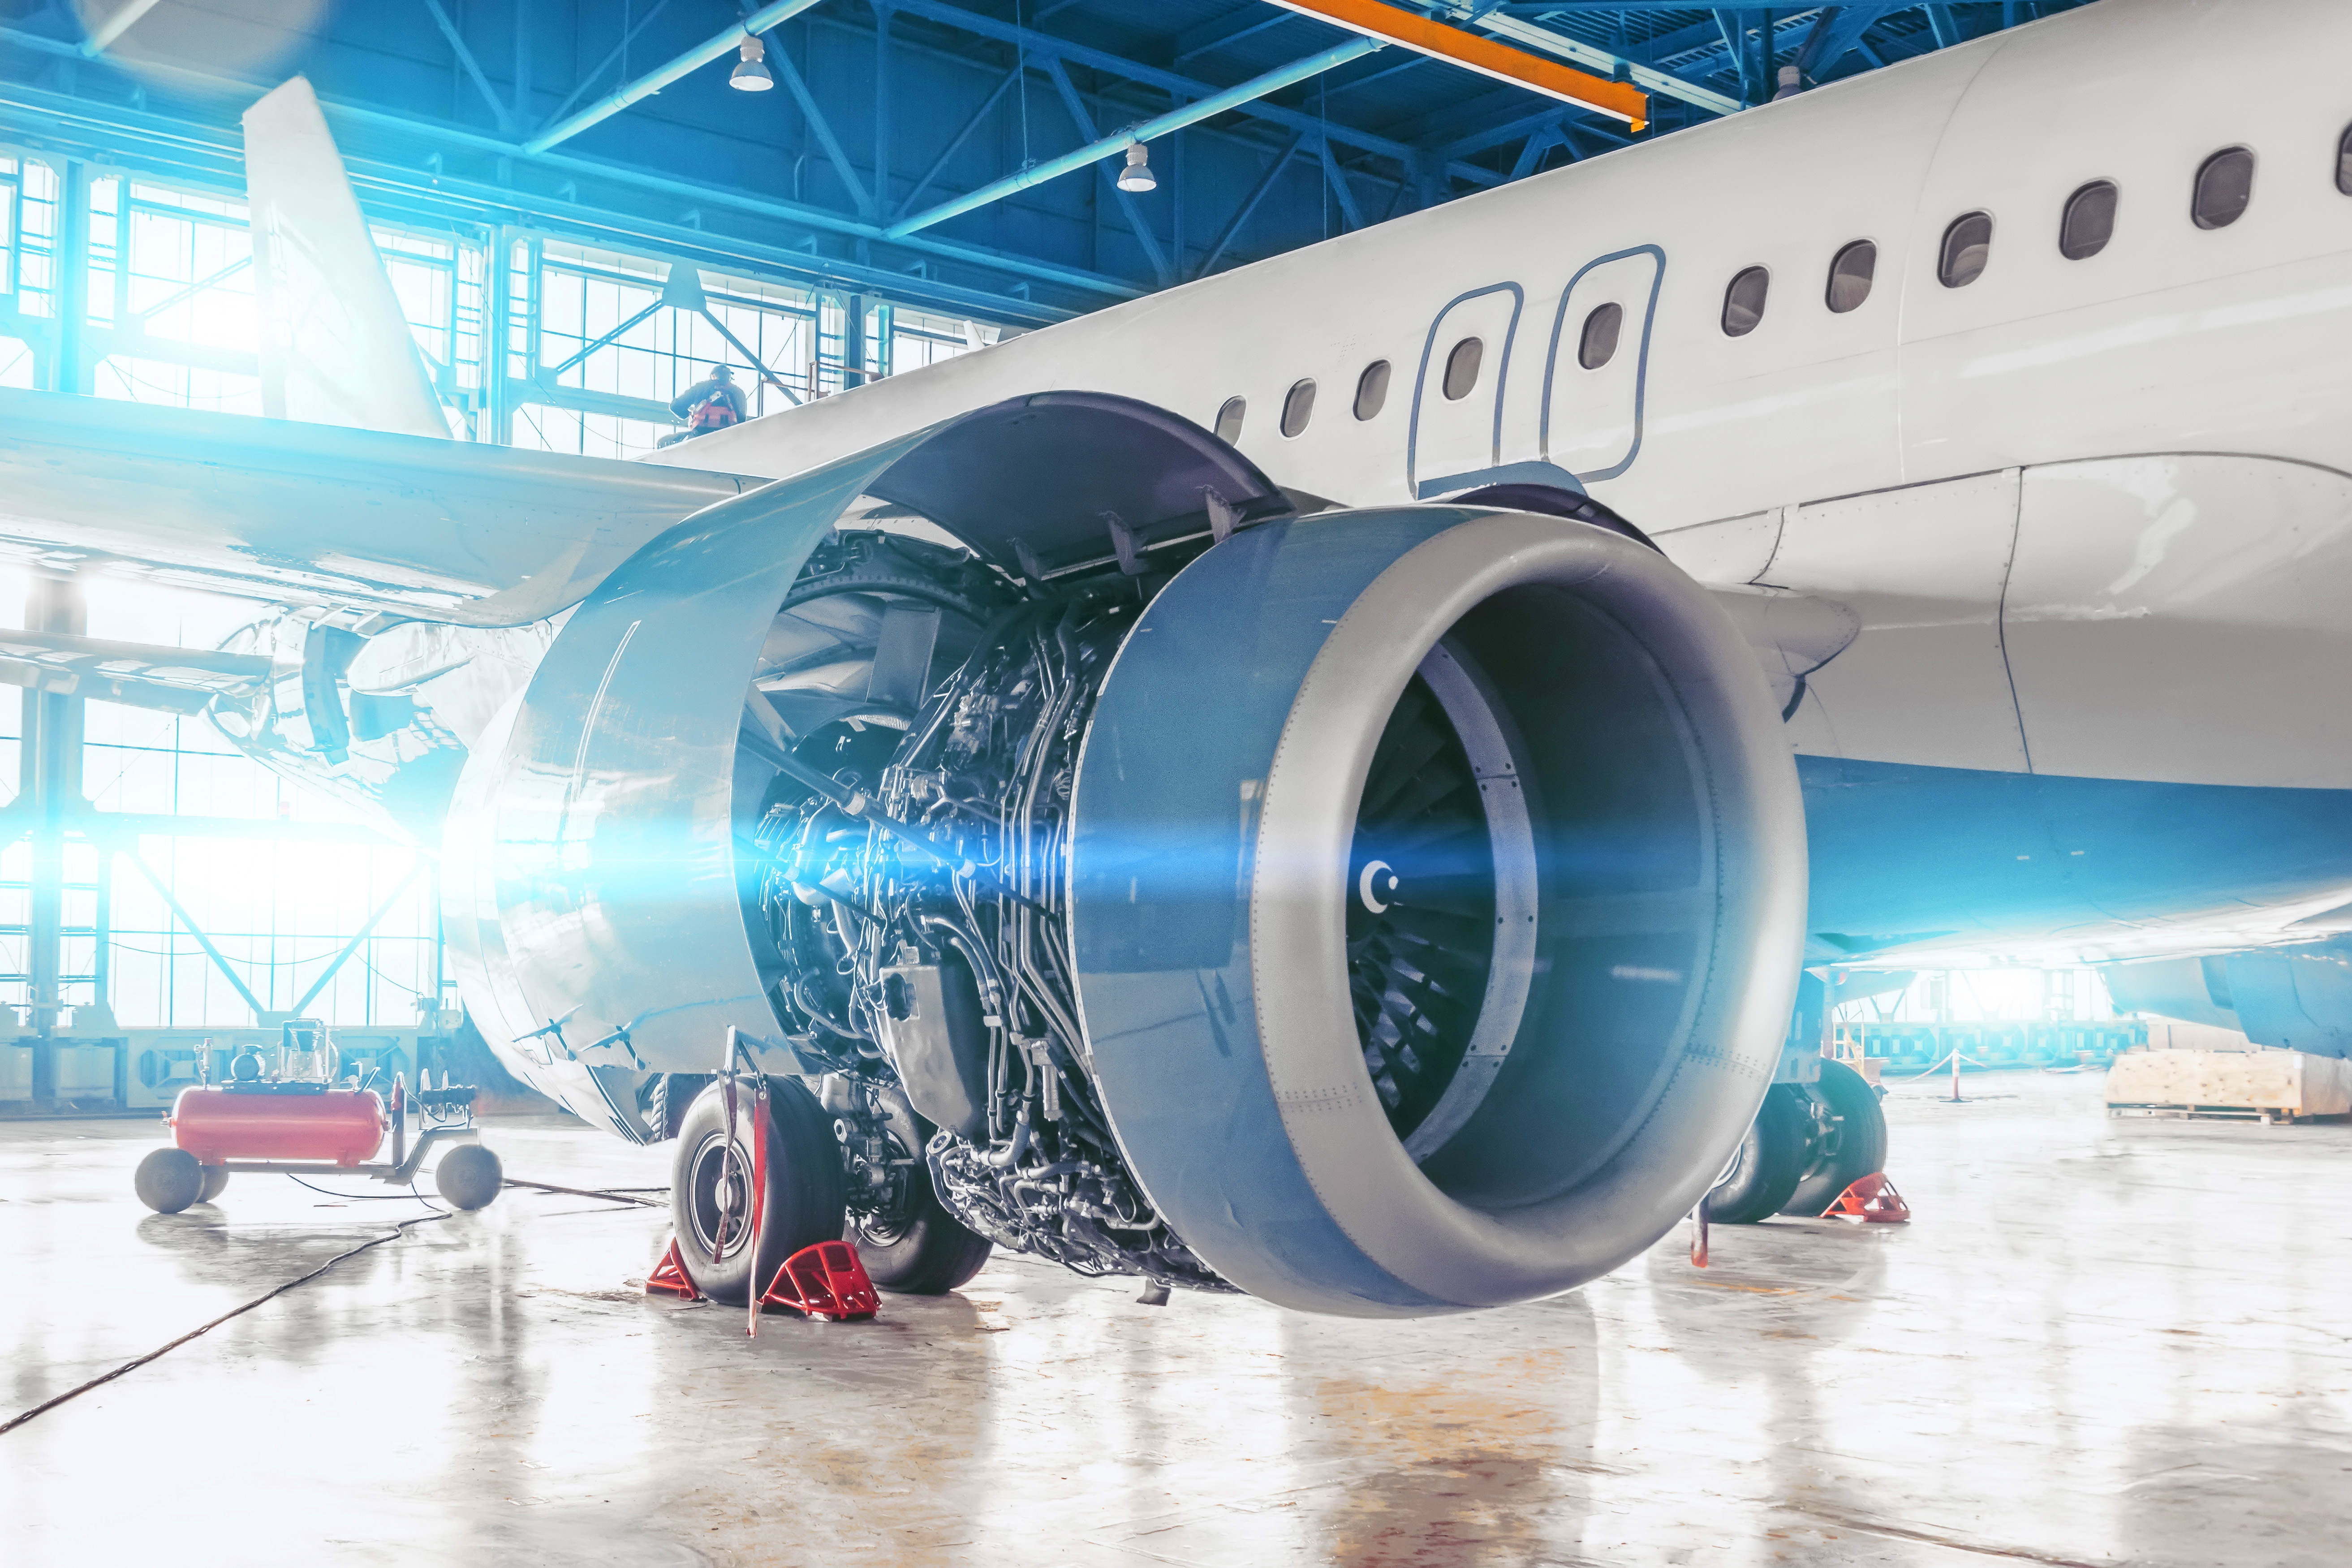 Repair and maintenance of aircraft jet engine with hood open on the wing.